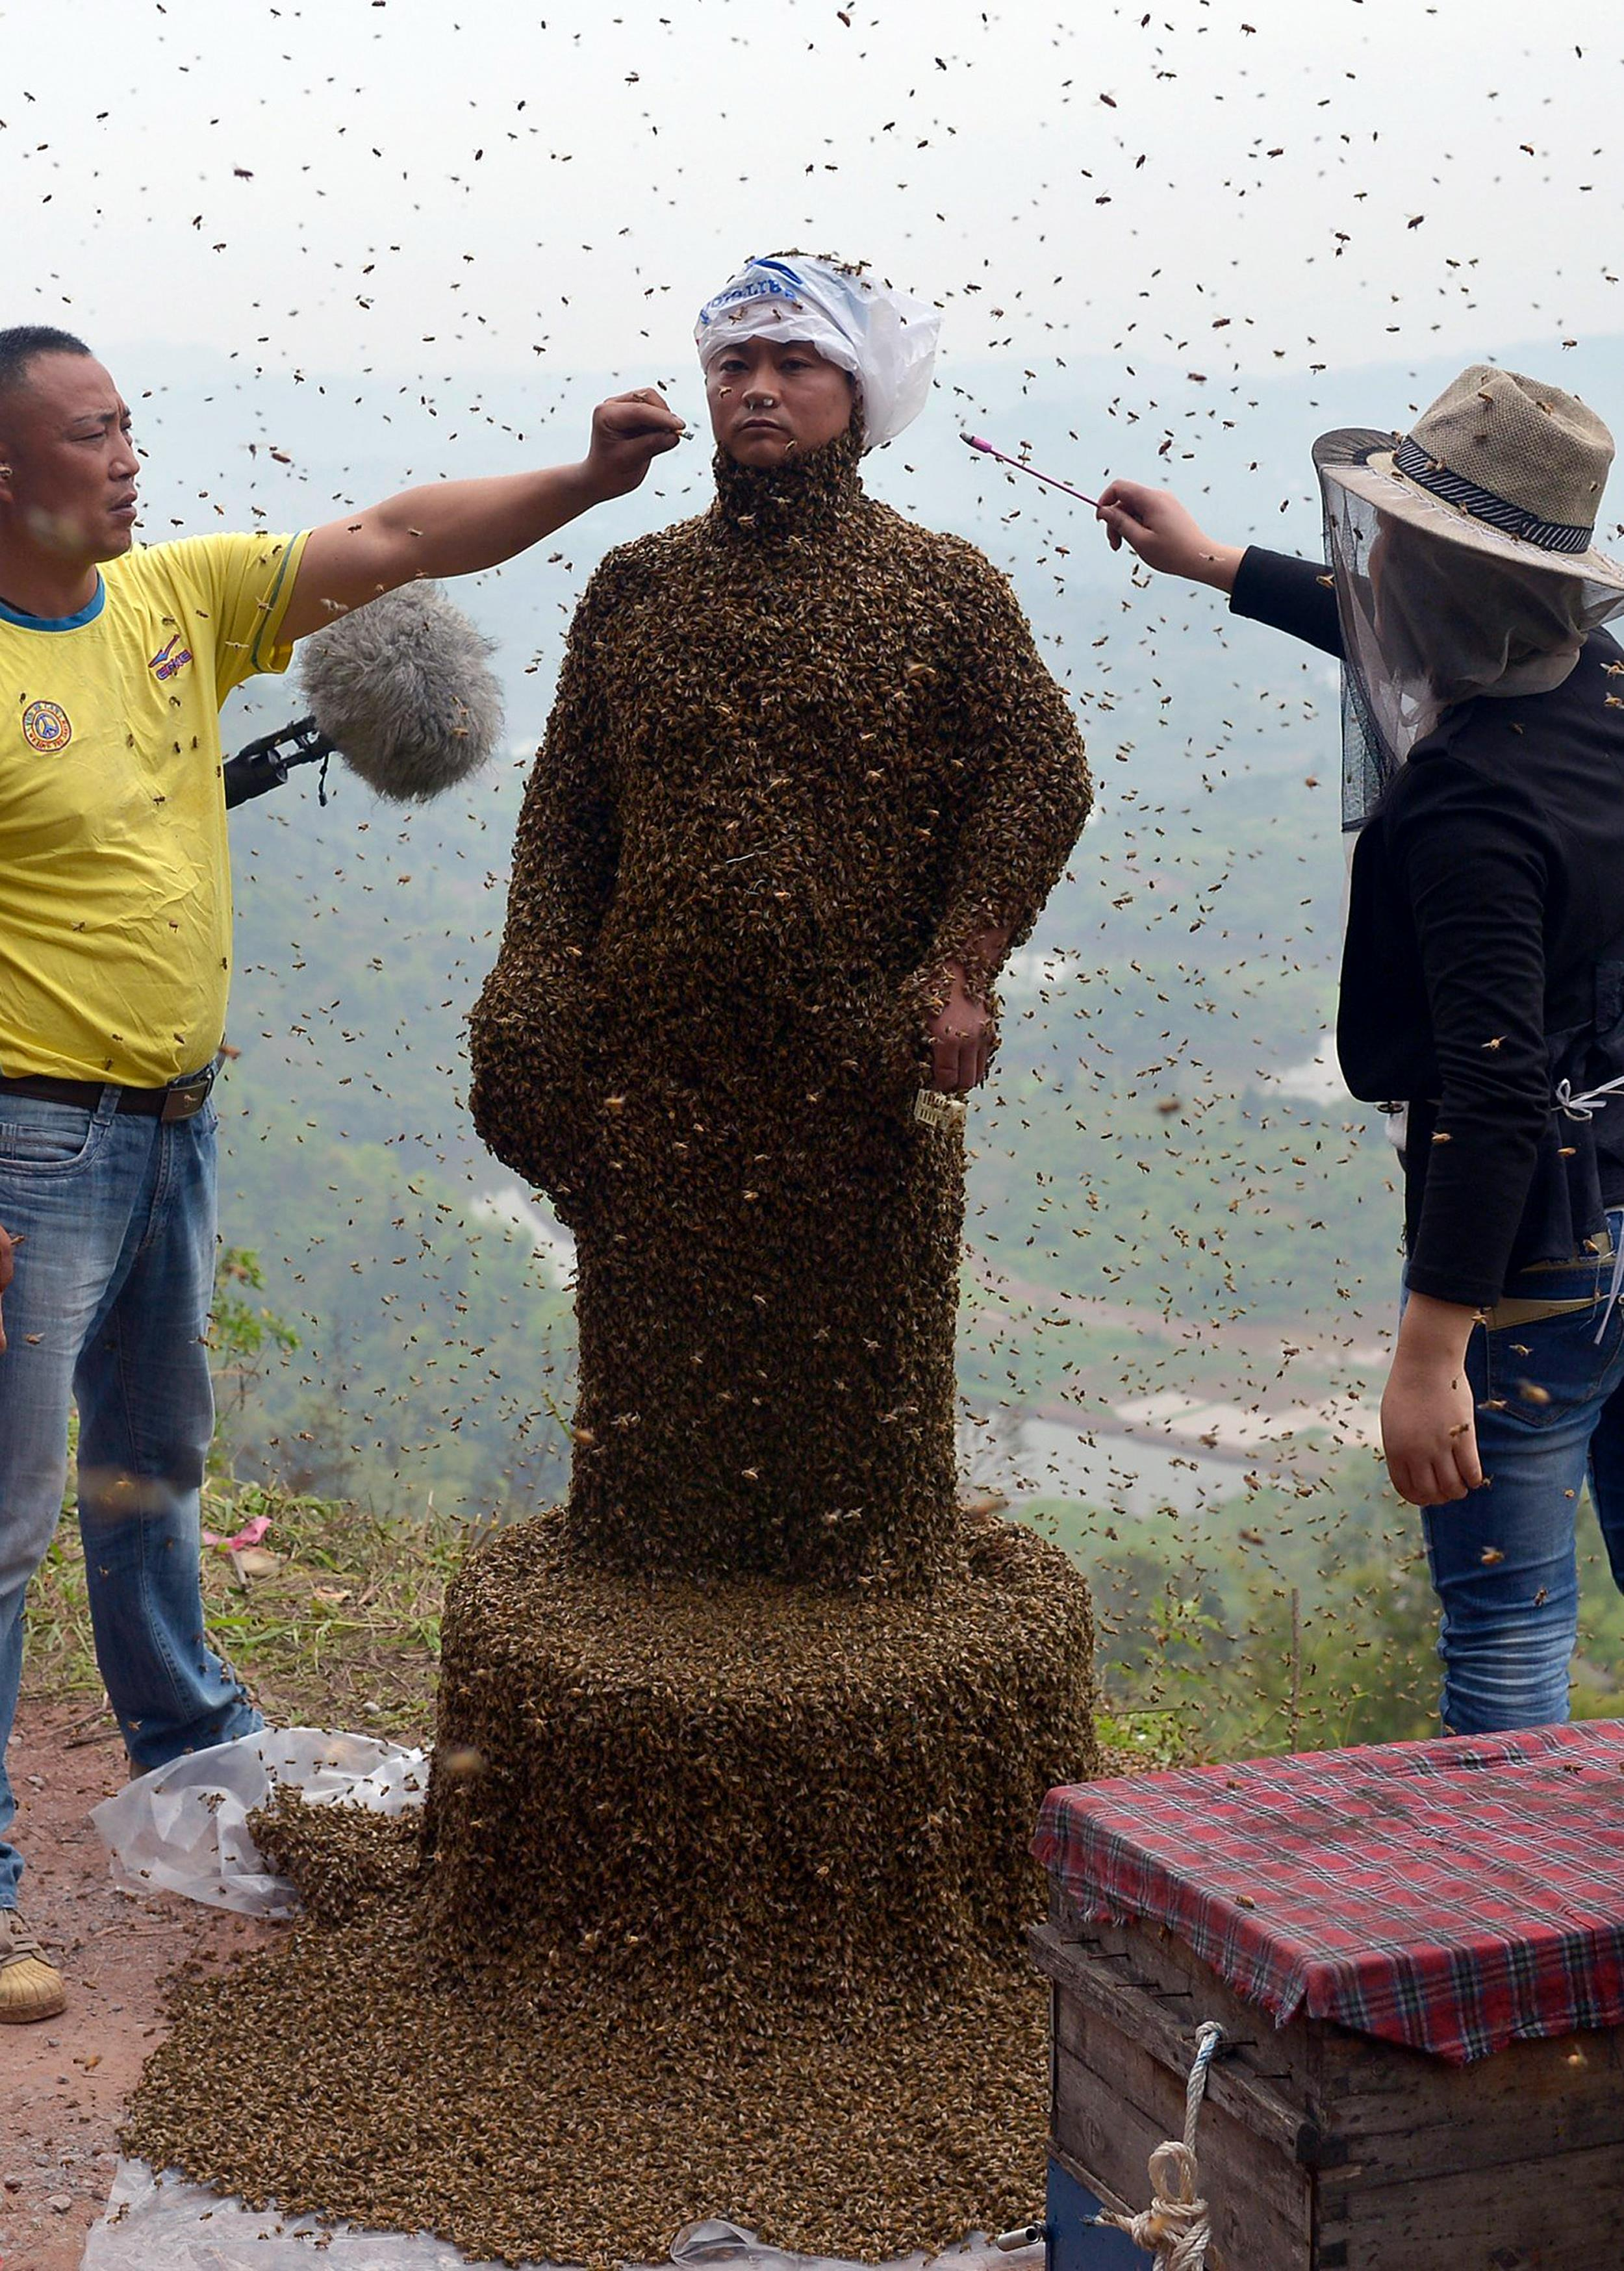 Image: Assistants use burning incense and cigarettes to drive away from the face of She during attempt to cover She's body with bees, in Chongqing municipality